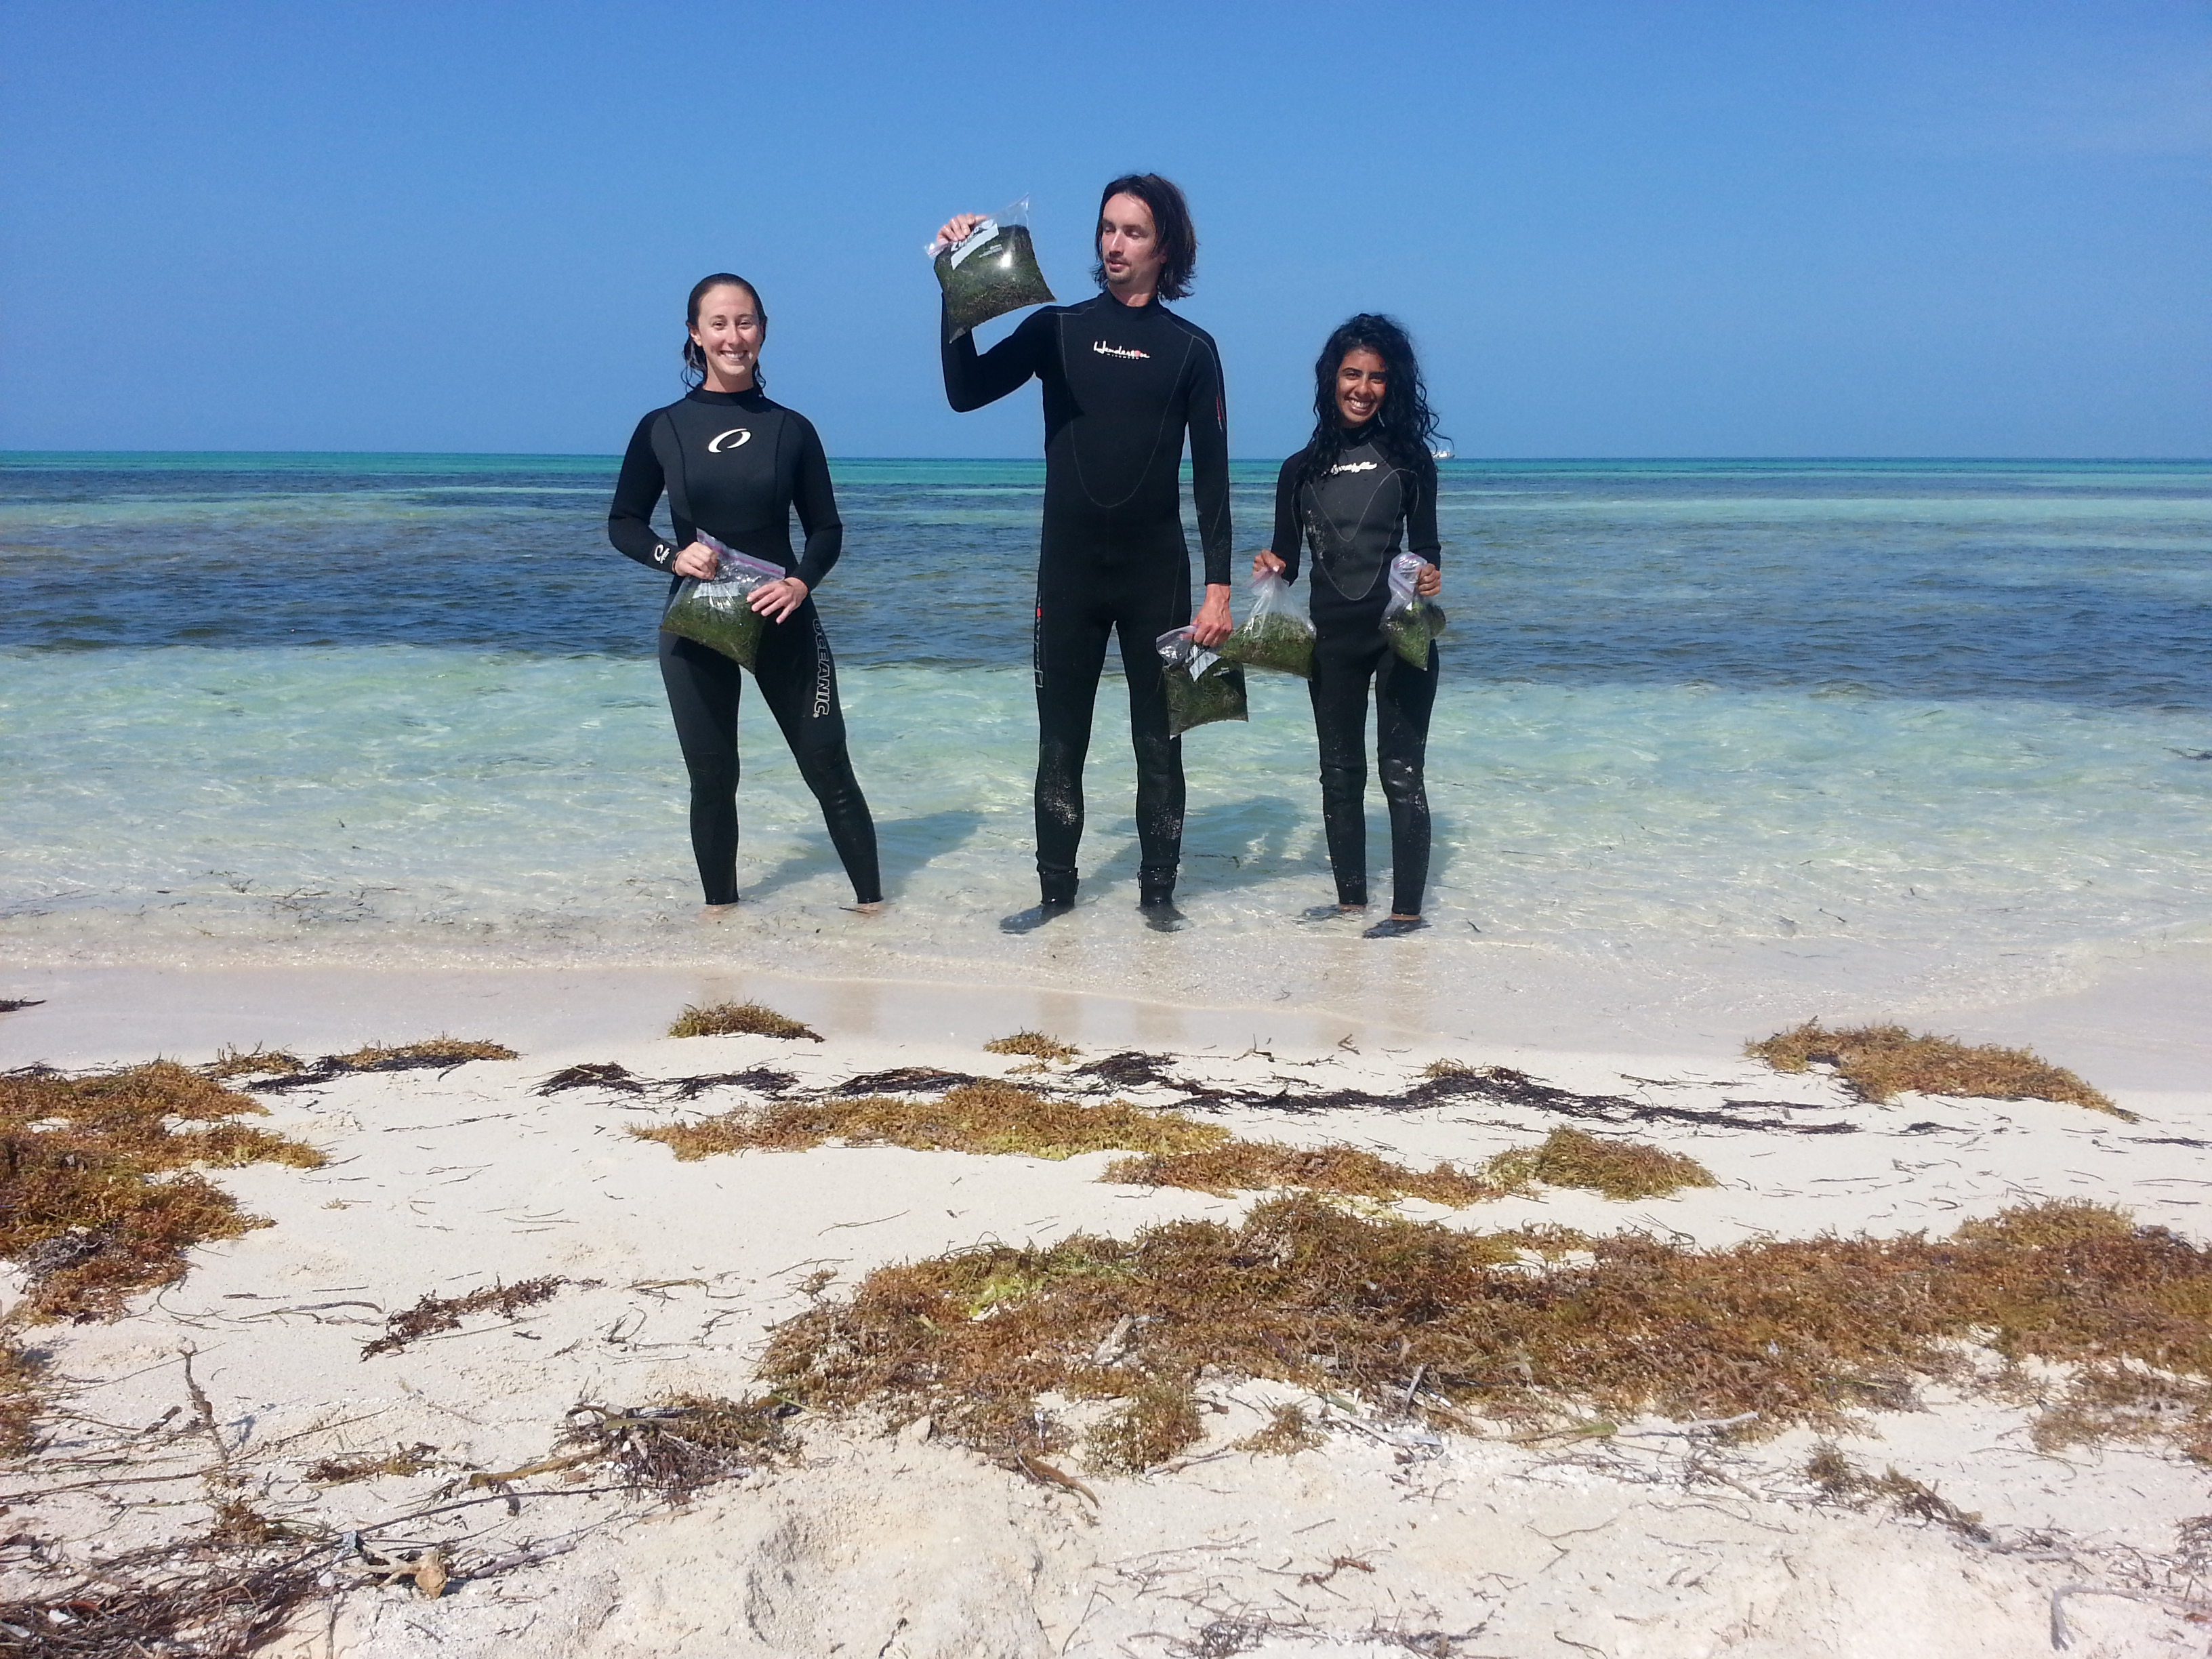 UF scientists Michelle Bousquet, Ph.D., Hendrik Luesch, Ph.D., and Fatma Al-Awadhi, Ph.D.,  collected seaweed off the coast of Boca Grande Key, an island about 15 miles west of Key West.